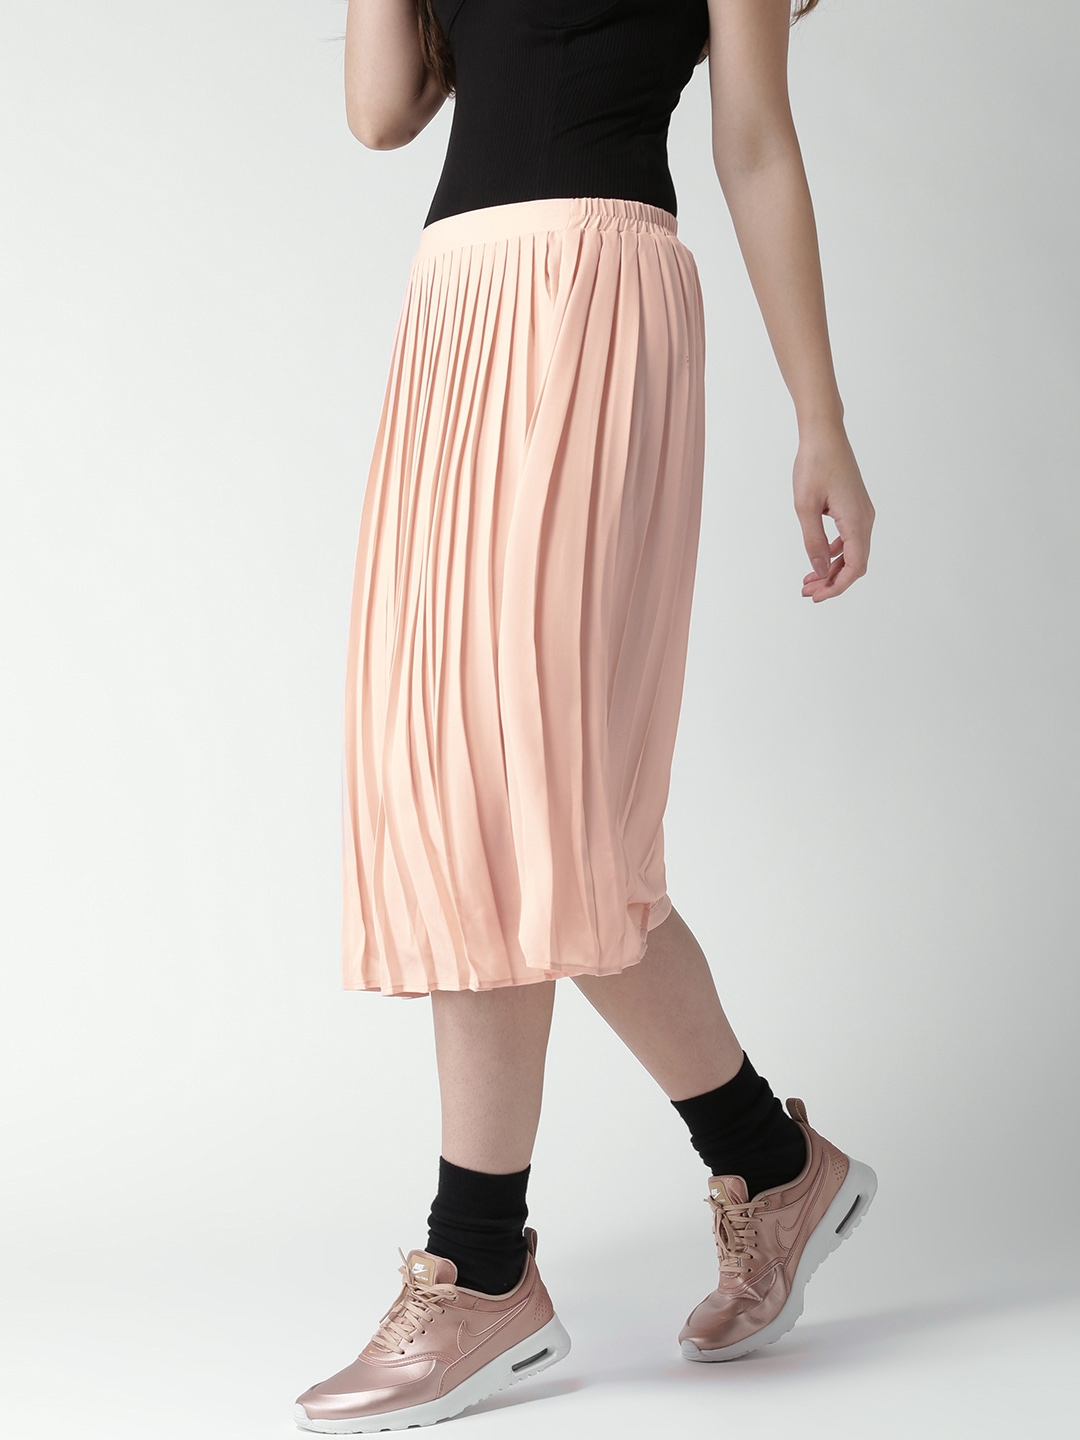 8513c8f3c2 Buy FOREVER 21 Peach Coloured Midi Flared Skirt With Accordion ...